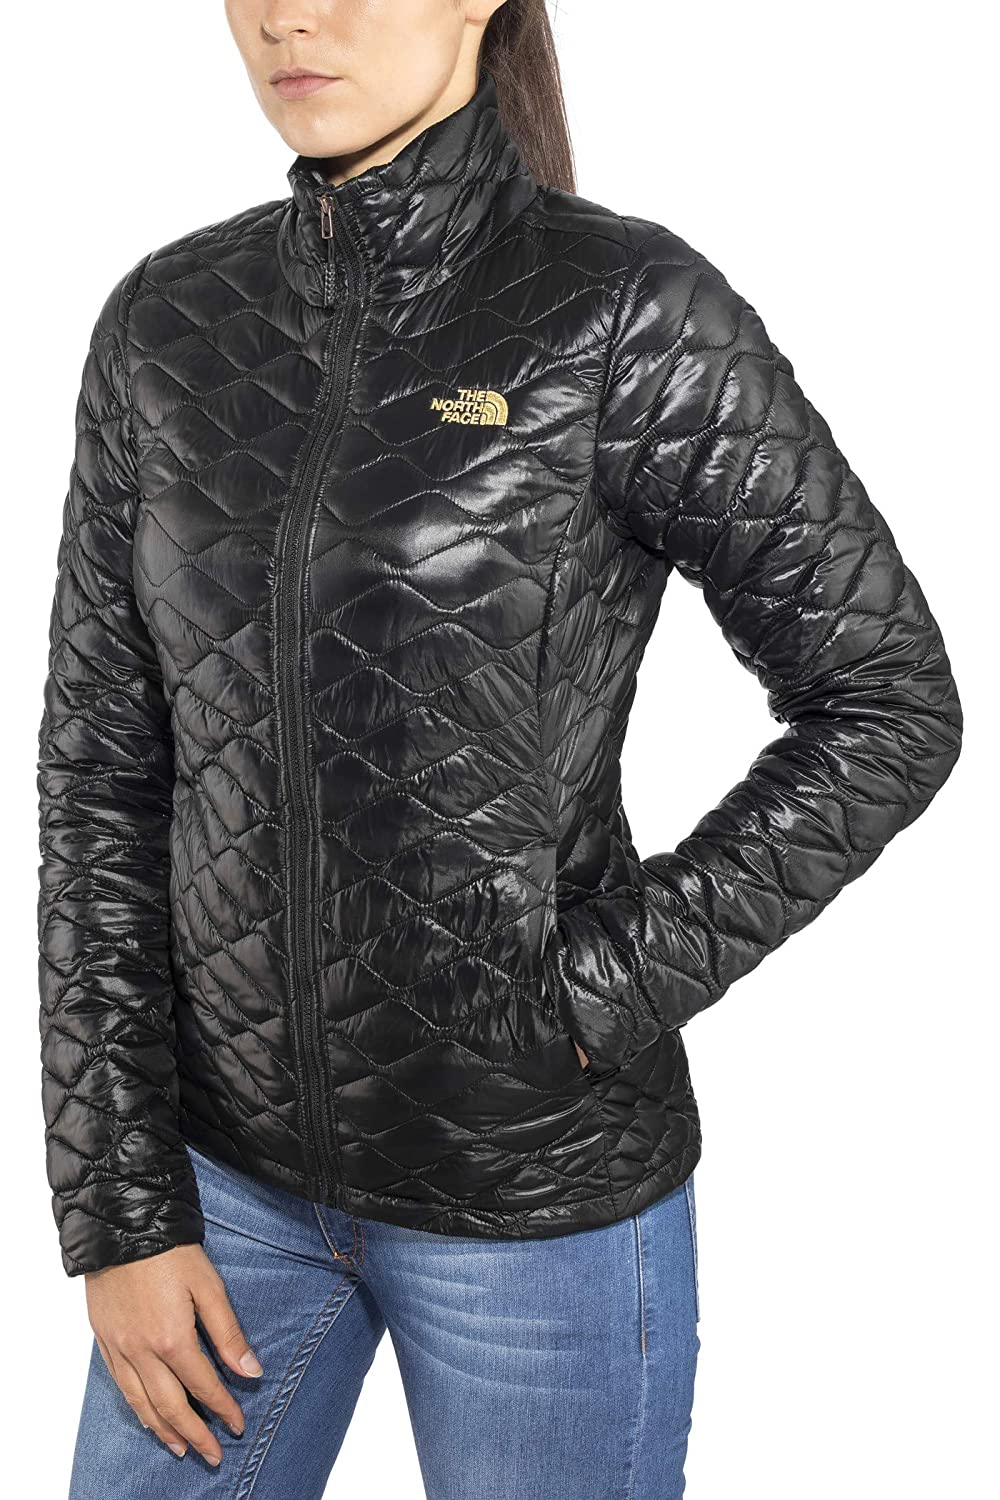 Tnf Black Shine L The North Face Thermoball Women's Outdoor Jacket